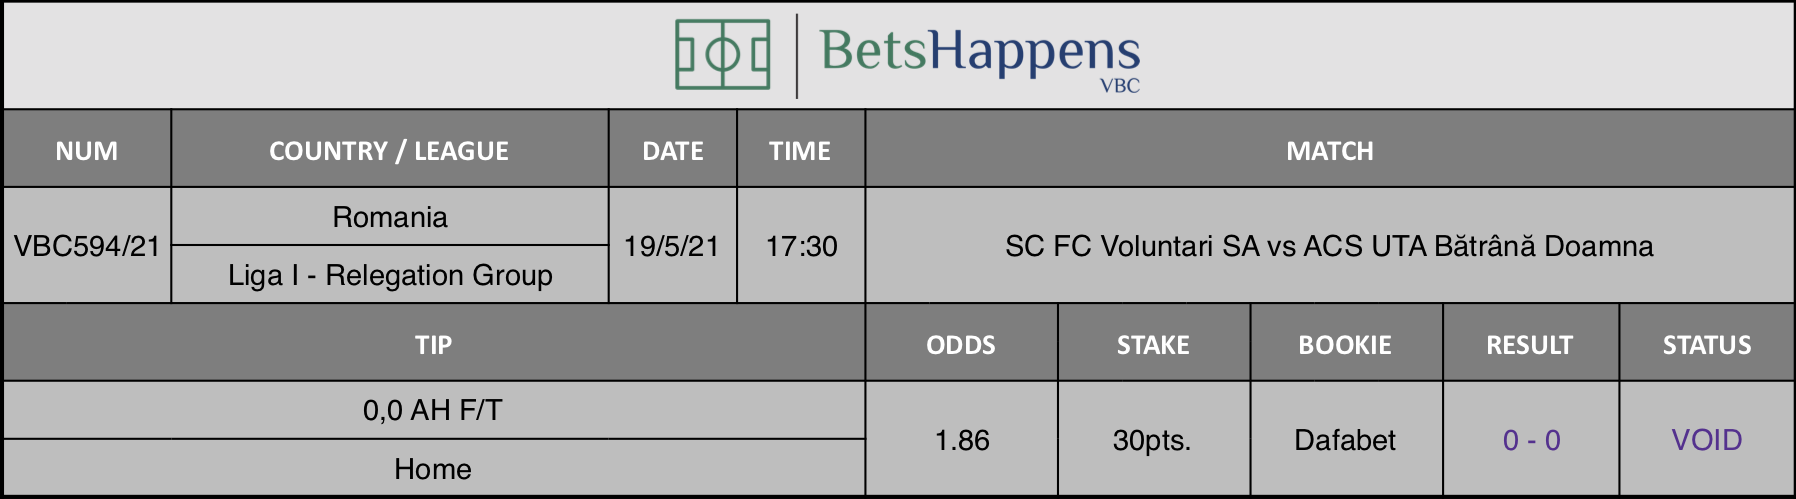 Results of our tip for the SC FC Voluntari SA vs ACS UTA Bătrână Doamna match where 0,0 AH F/T  Home is recommended.